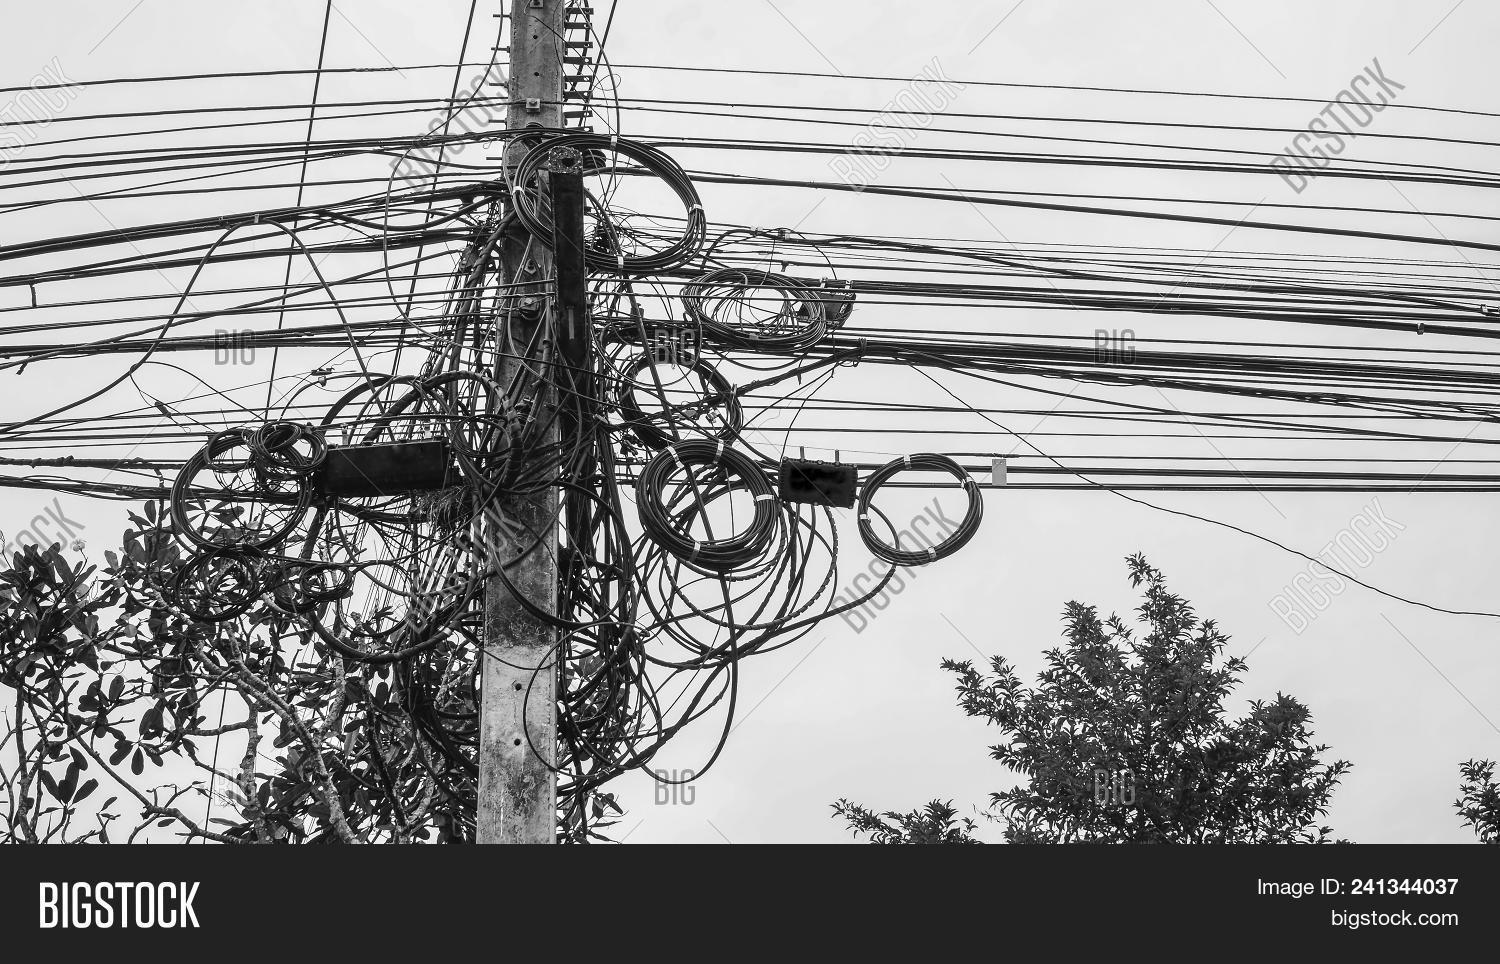 High Voltage Power Pole With Wires Tangled Wire And Cable Clutter Potential Danger From A Mess Of W 241344037 Image Stock Photo